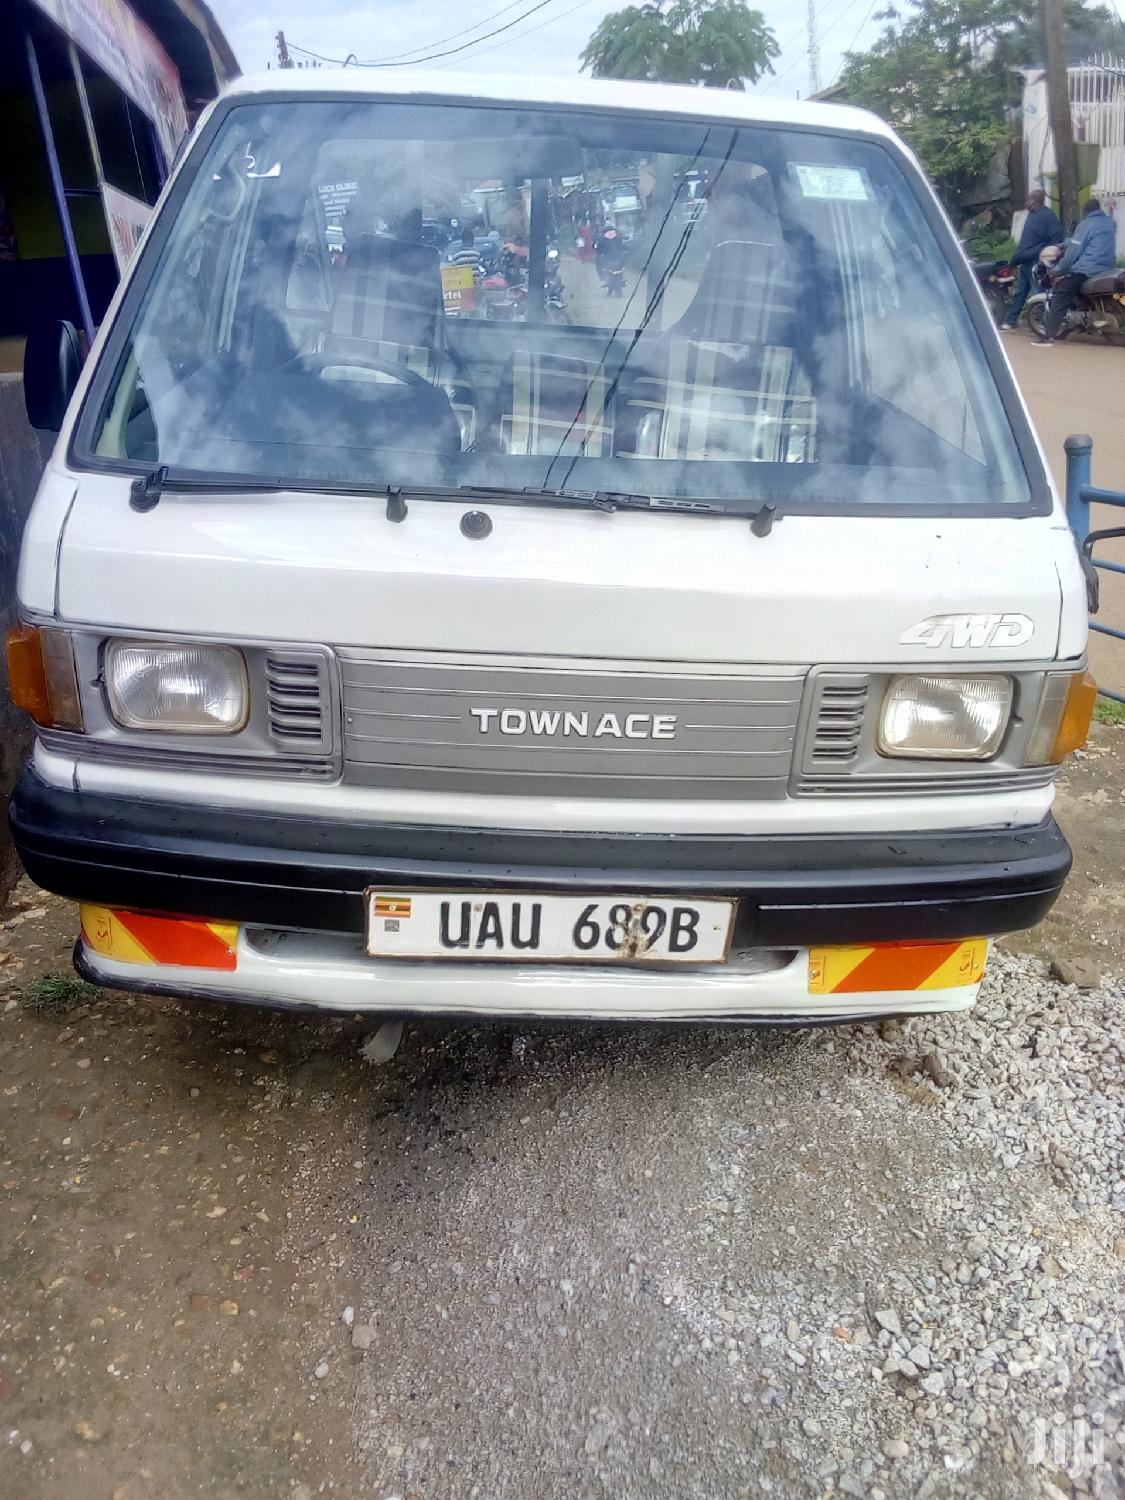 TOWNACE. In Good Condition | Trucks & Trailers for sale in Kampala, Central Region, Uganda